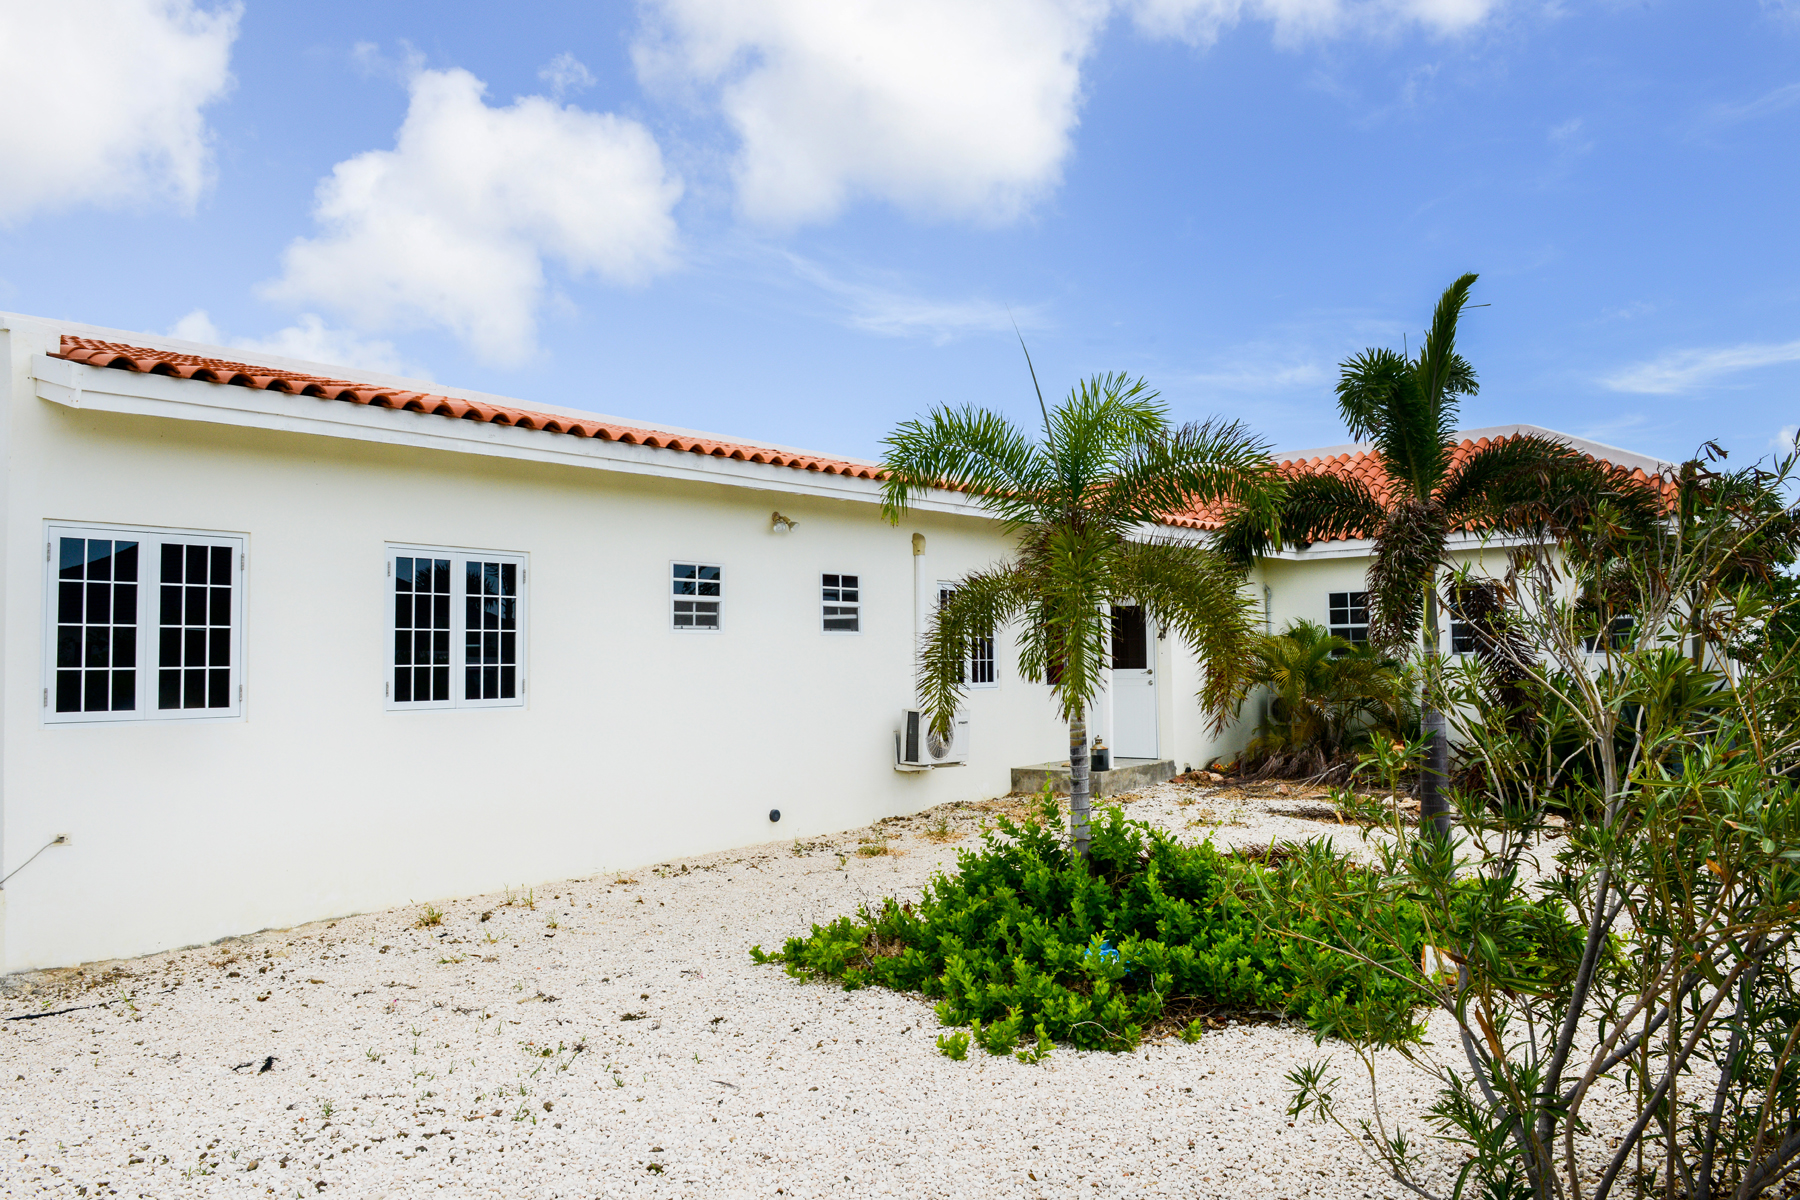 Single Family Home for Sale at Villa Anne in Bonaire Kralendijk, Bonaire